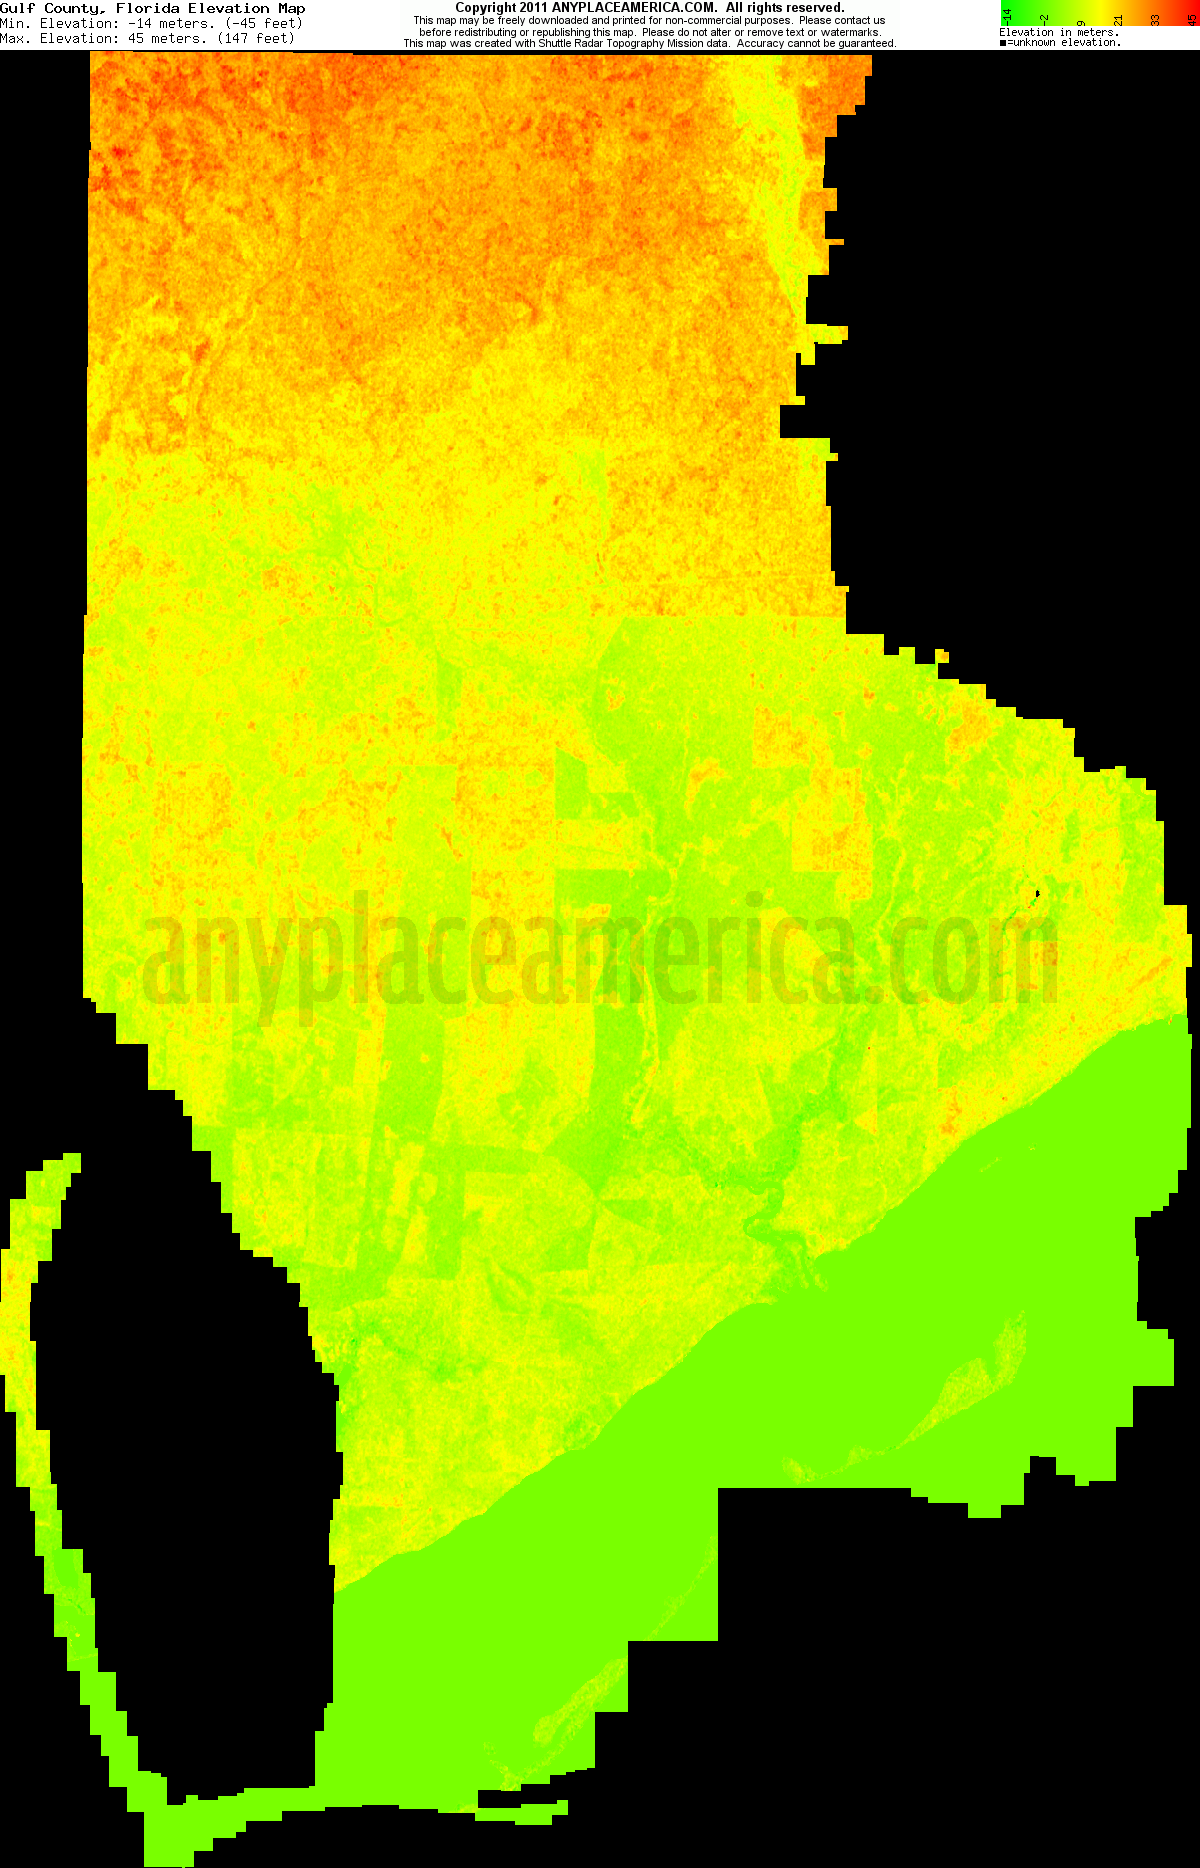 Free Gulf County Florida Topo Maps  Elevations - Map florida counties 2011